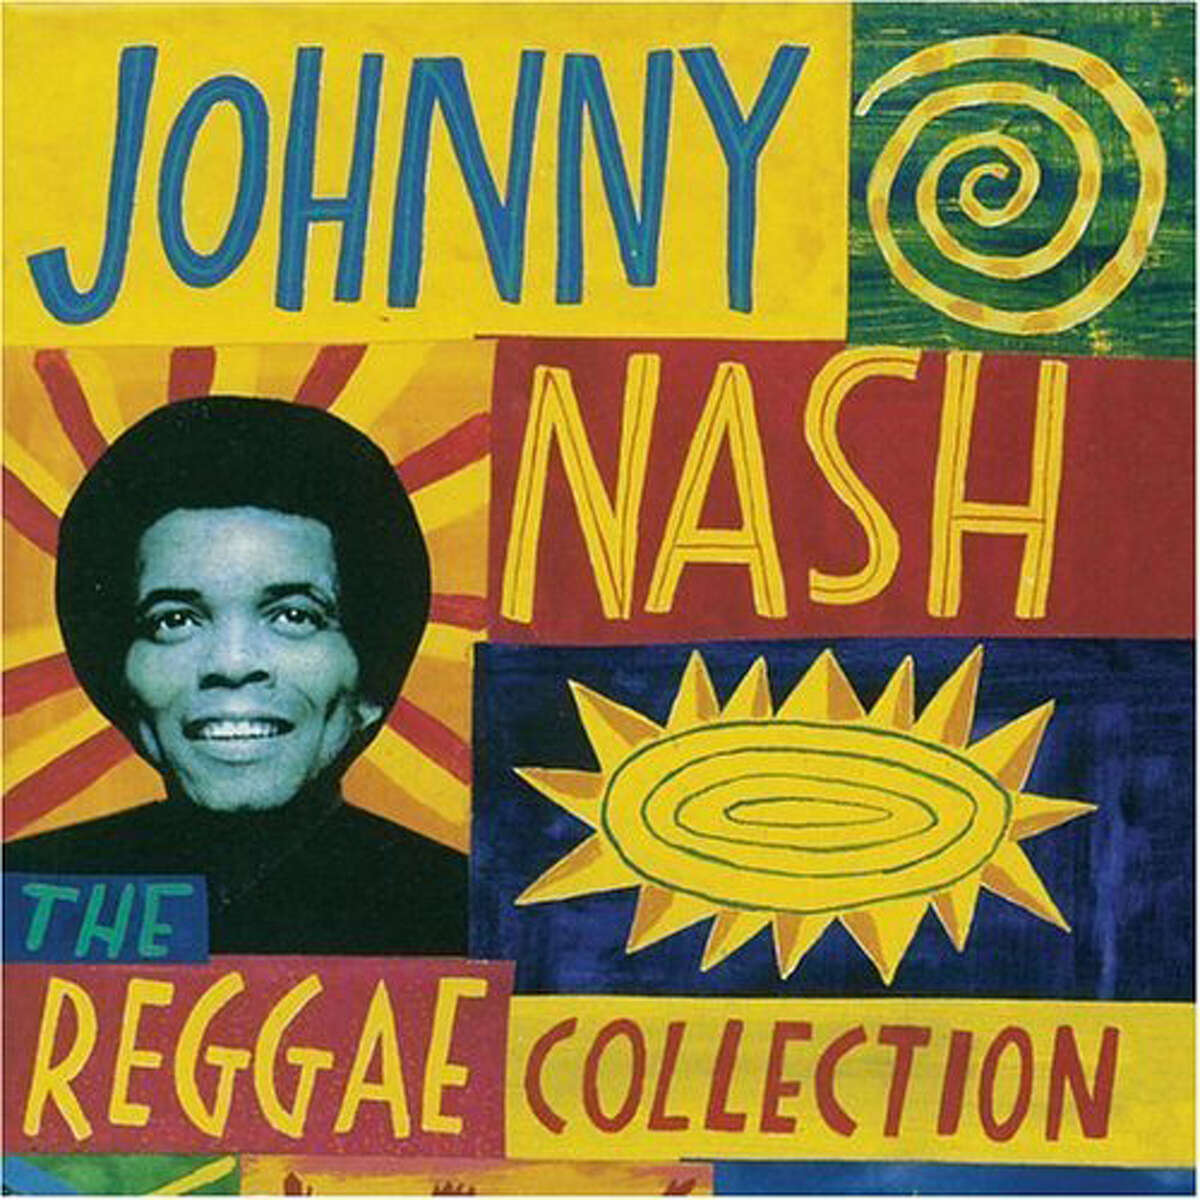 Johnny Nash S Career Clearly Had More Depth Than One Song